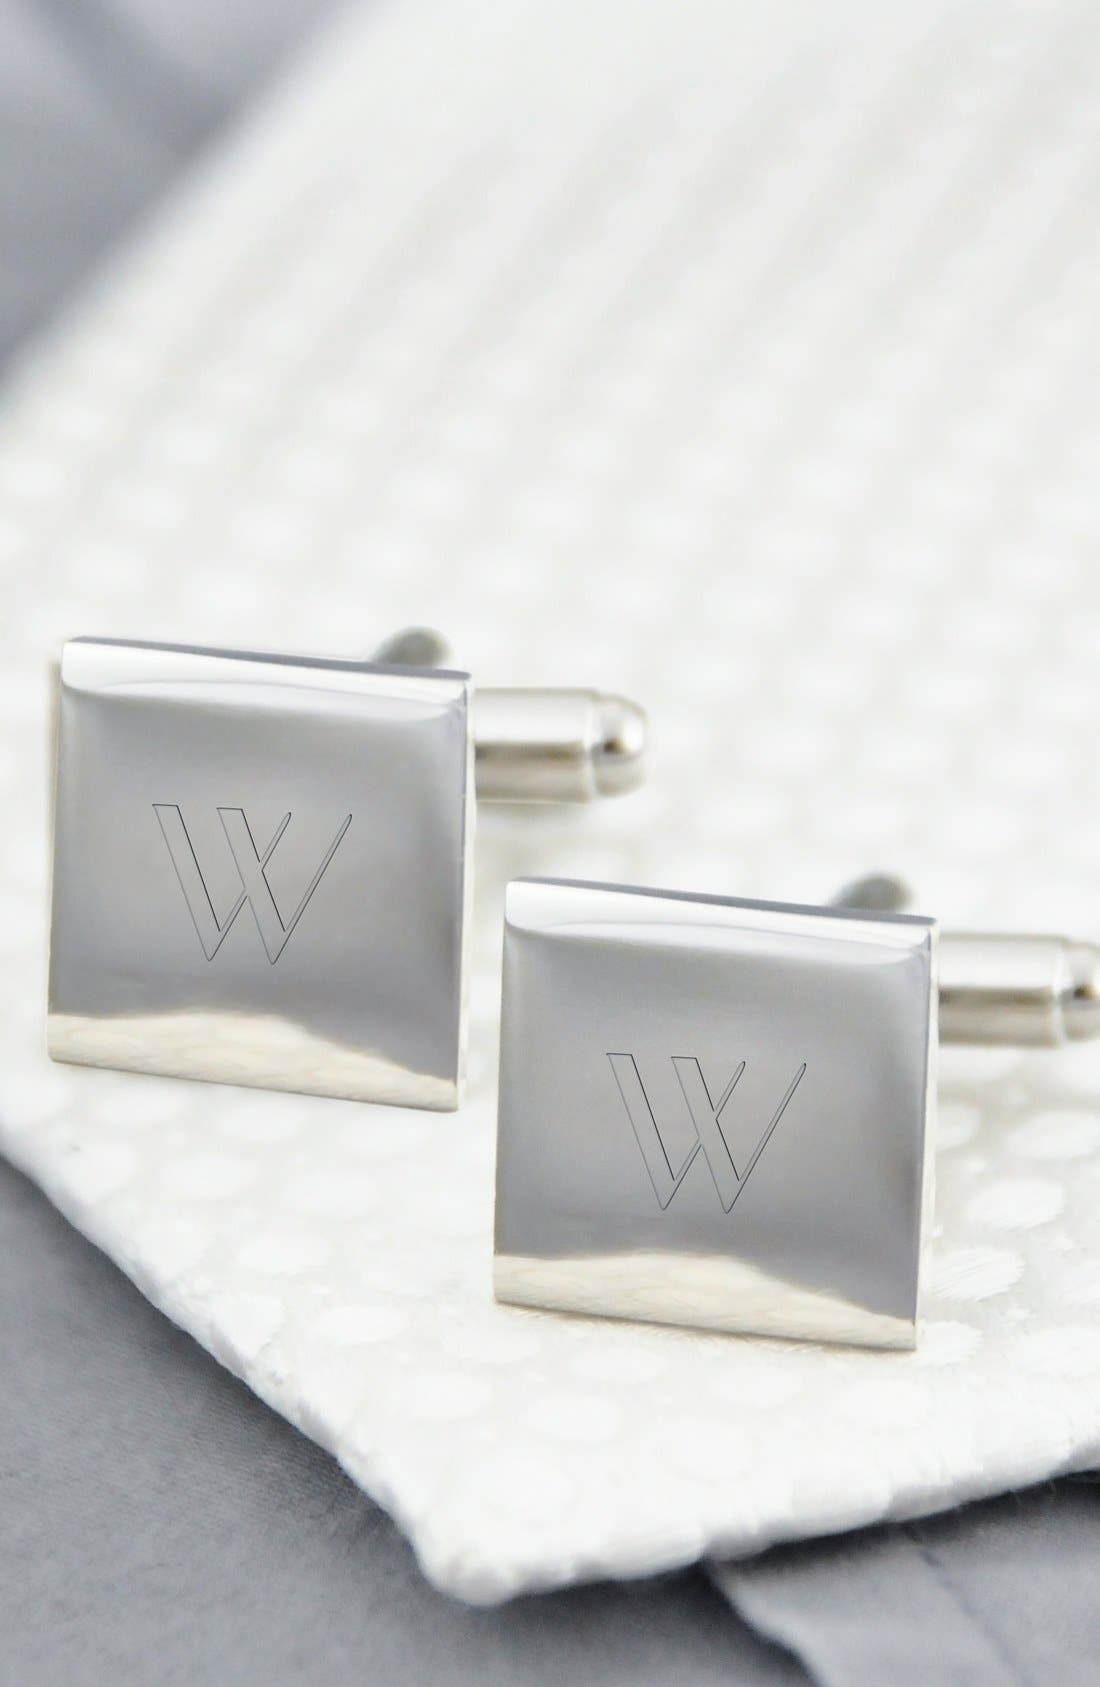 Alternate Image 1 Selected - Cathy's Concepts Monogram Square Cuff Links